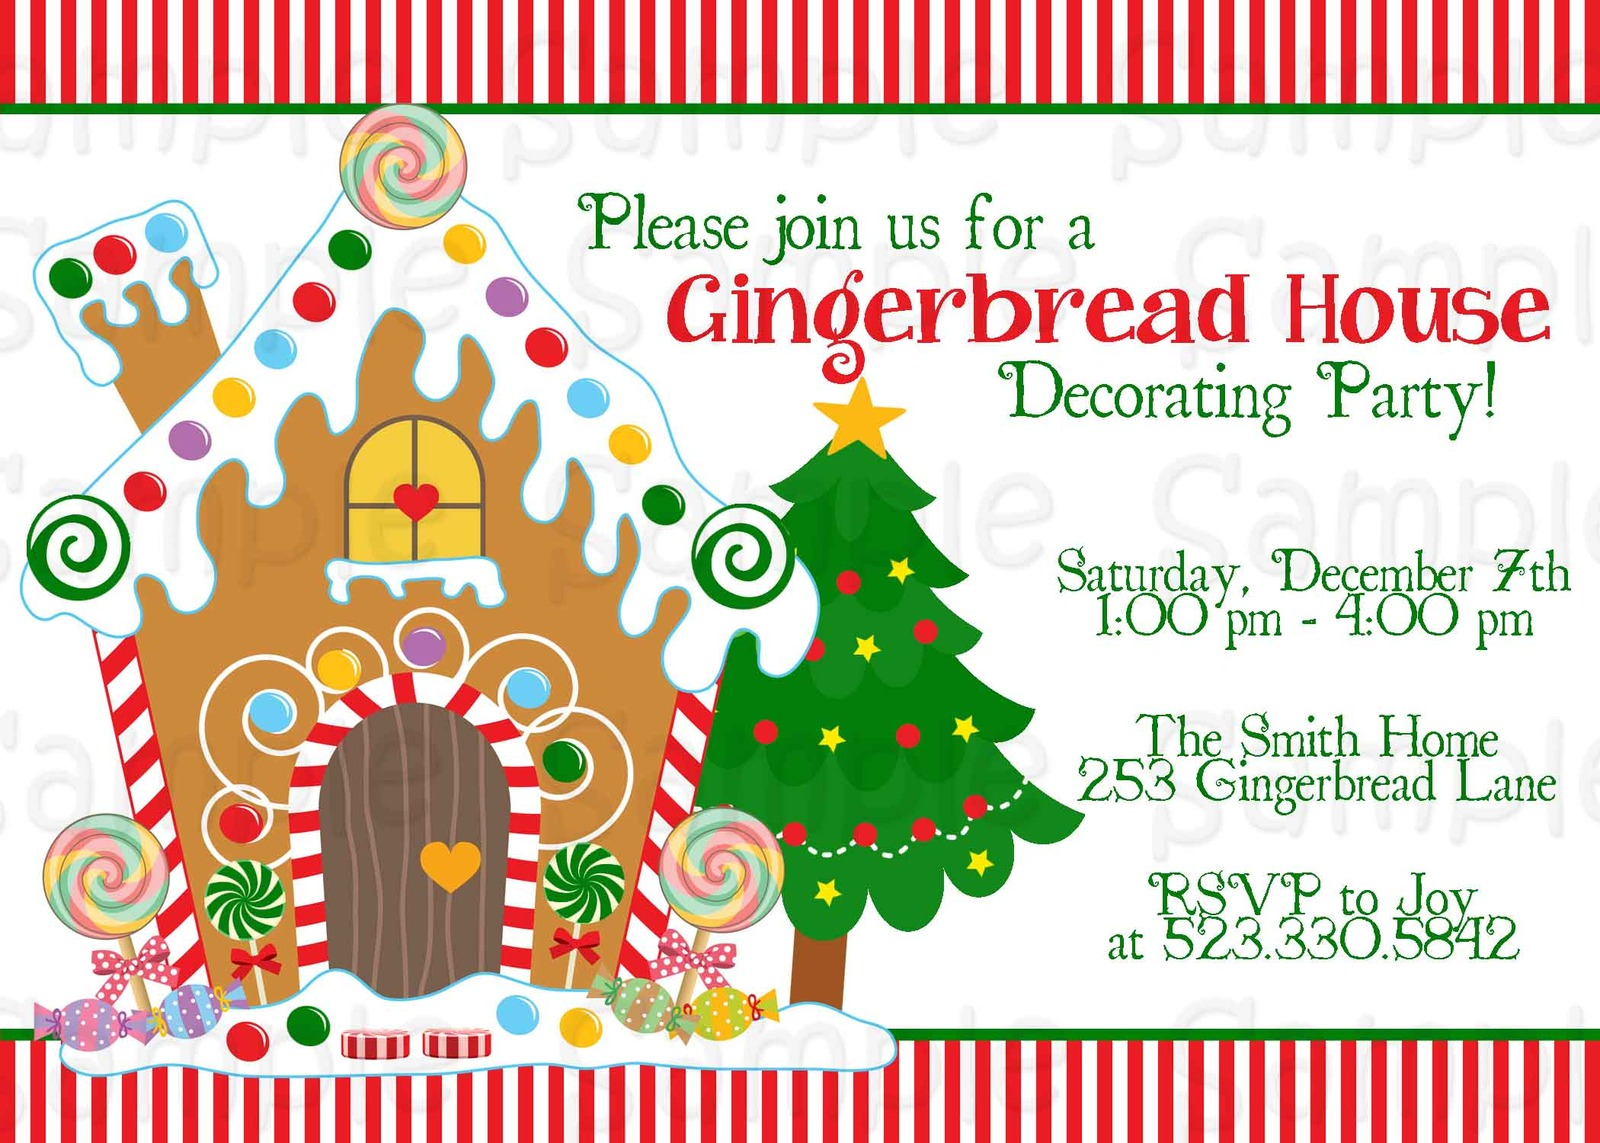 Gingerbread House Decorating Party Printable Invitation ...